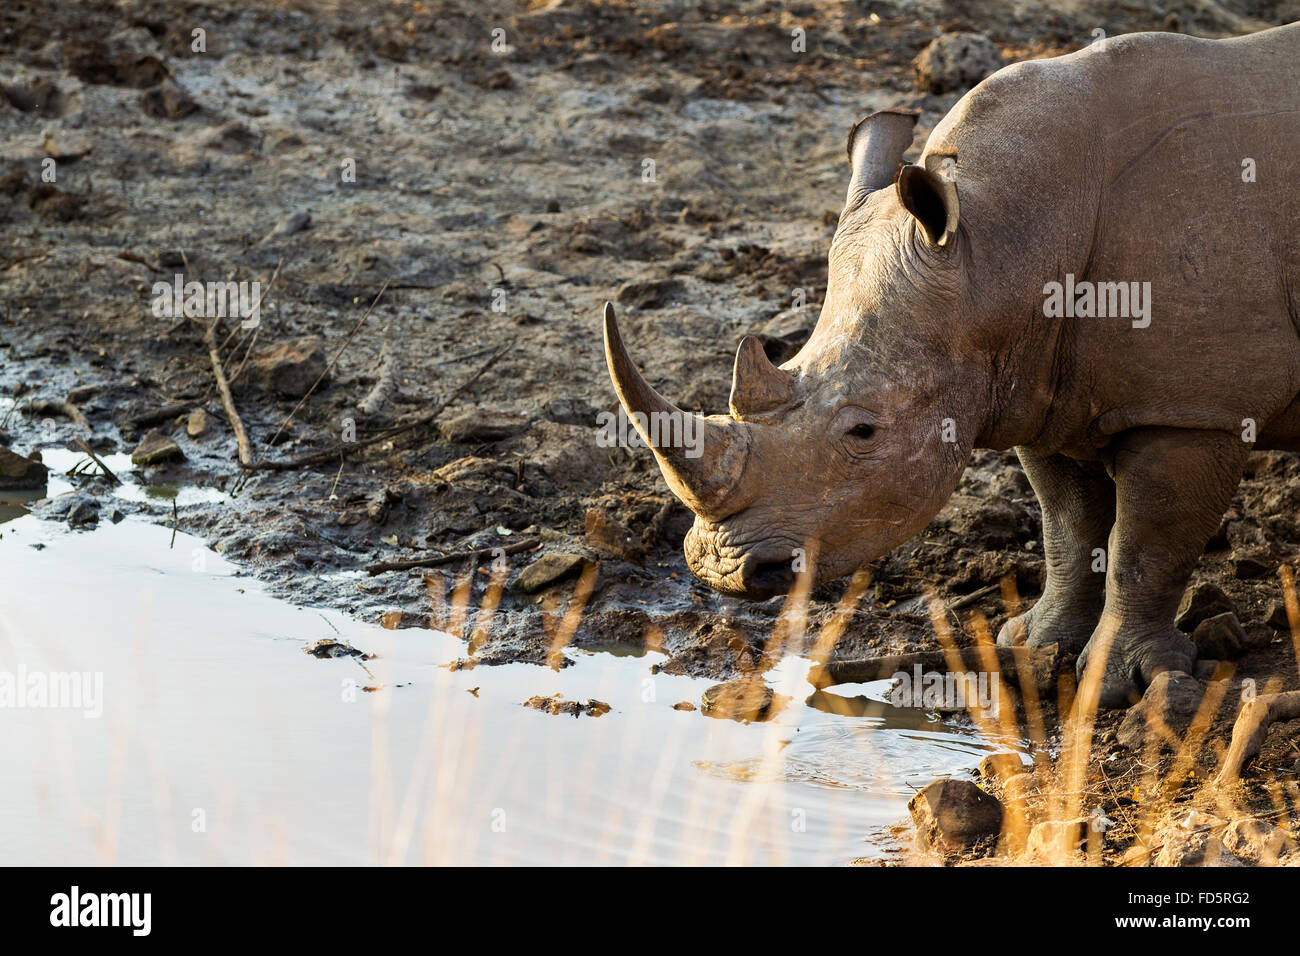 A white rhino about to have a drink - Stock Image